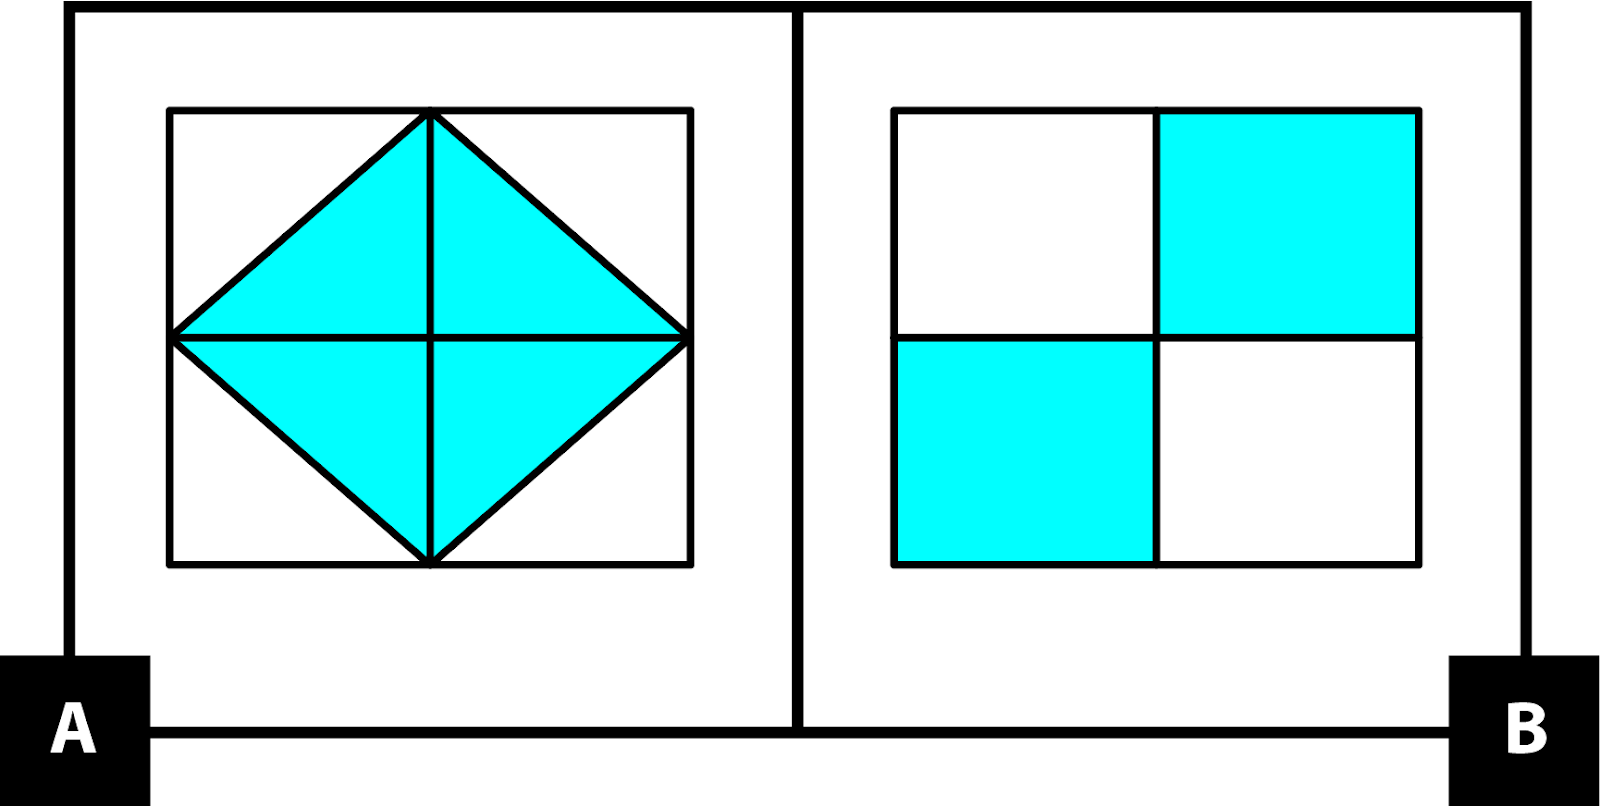 A shows a rectangle with 8 equal parts. It has 4 triangles on the top and 4 on the bottom. The 4 connected parts in the center are shaded, and form a rhombus. B shows a rectangle with 4 equal parts. It has 2 rectangles on the top and 2 rectangles on the bottom. The top right part and the bottom left part are shaded.